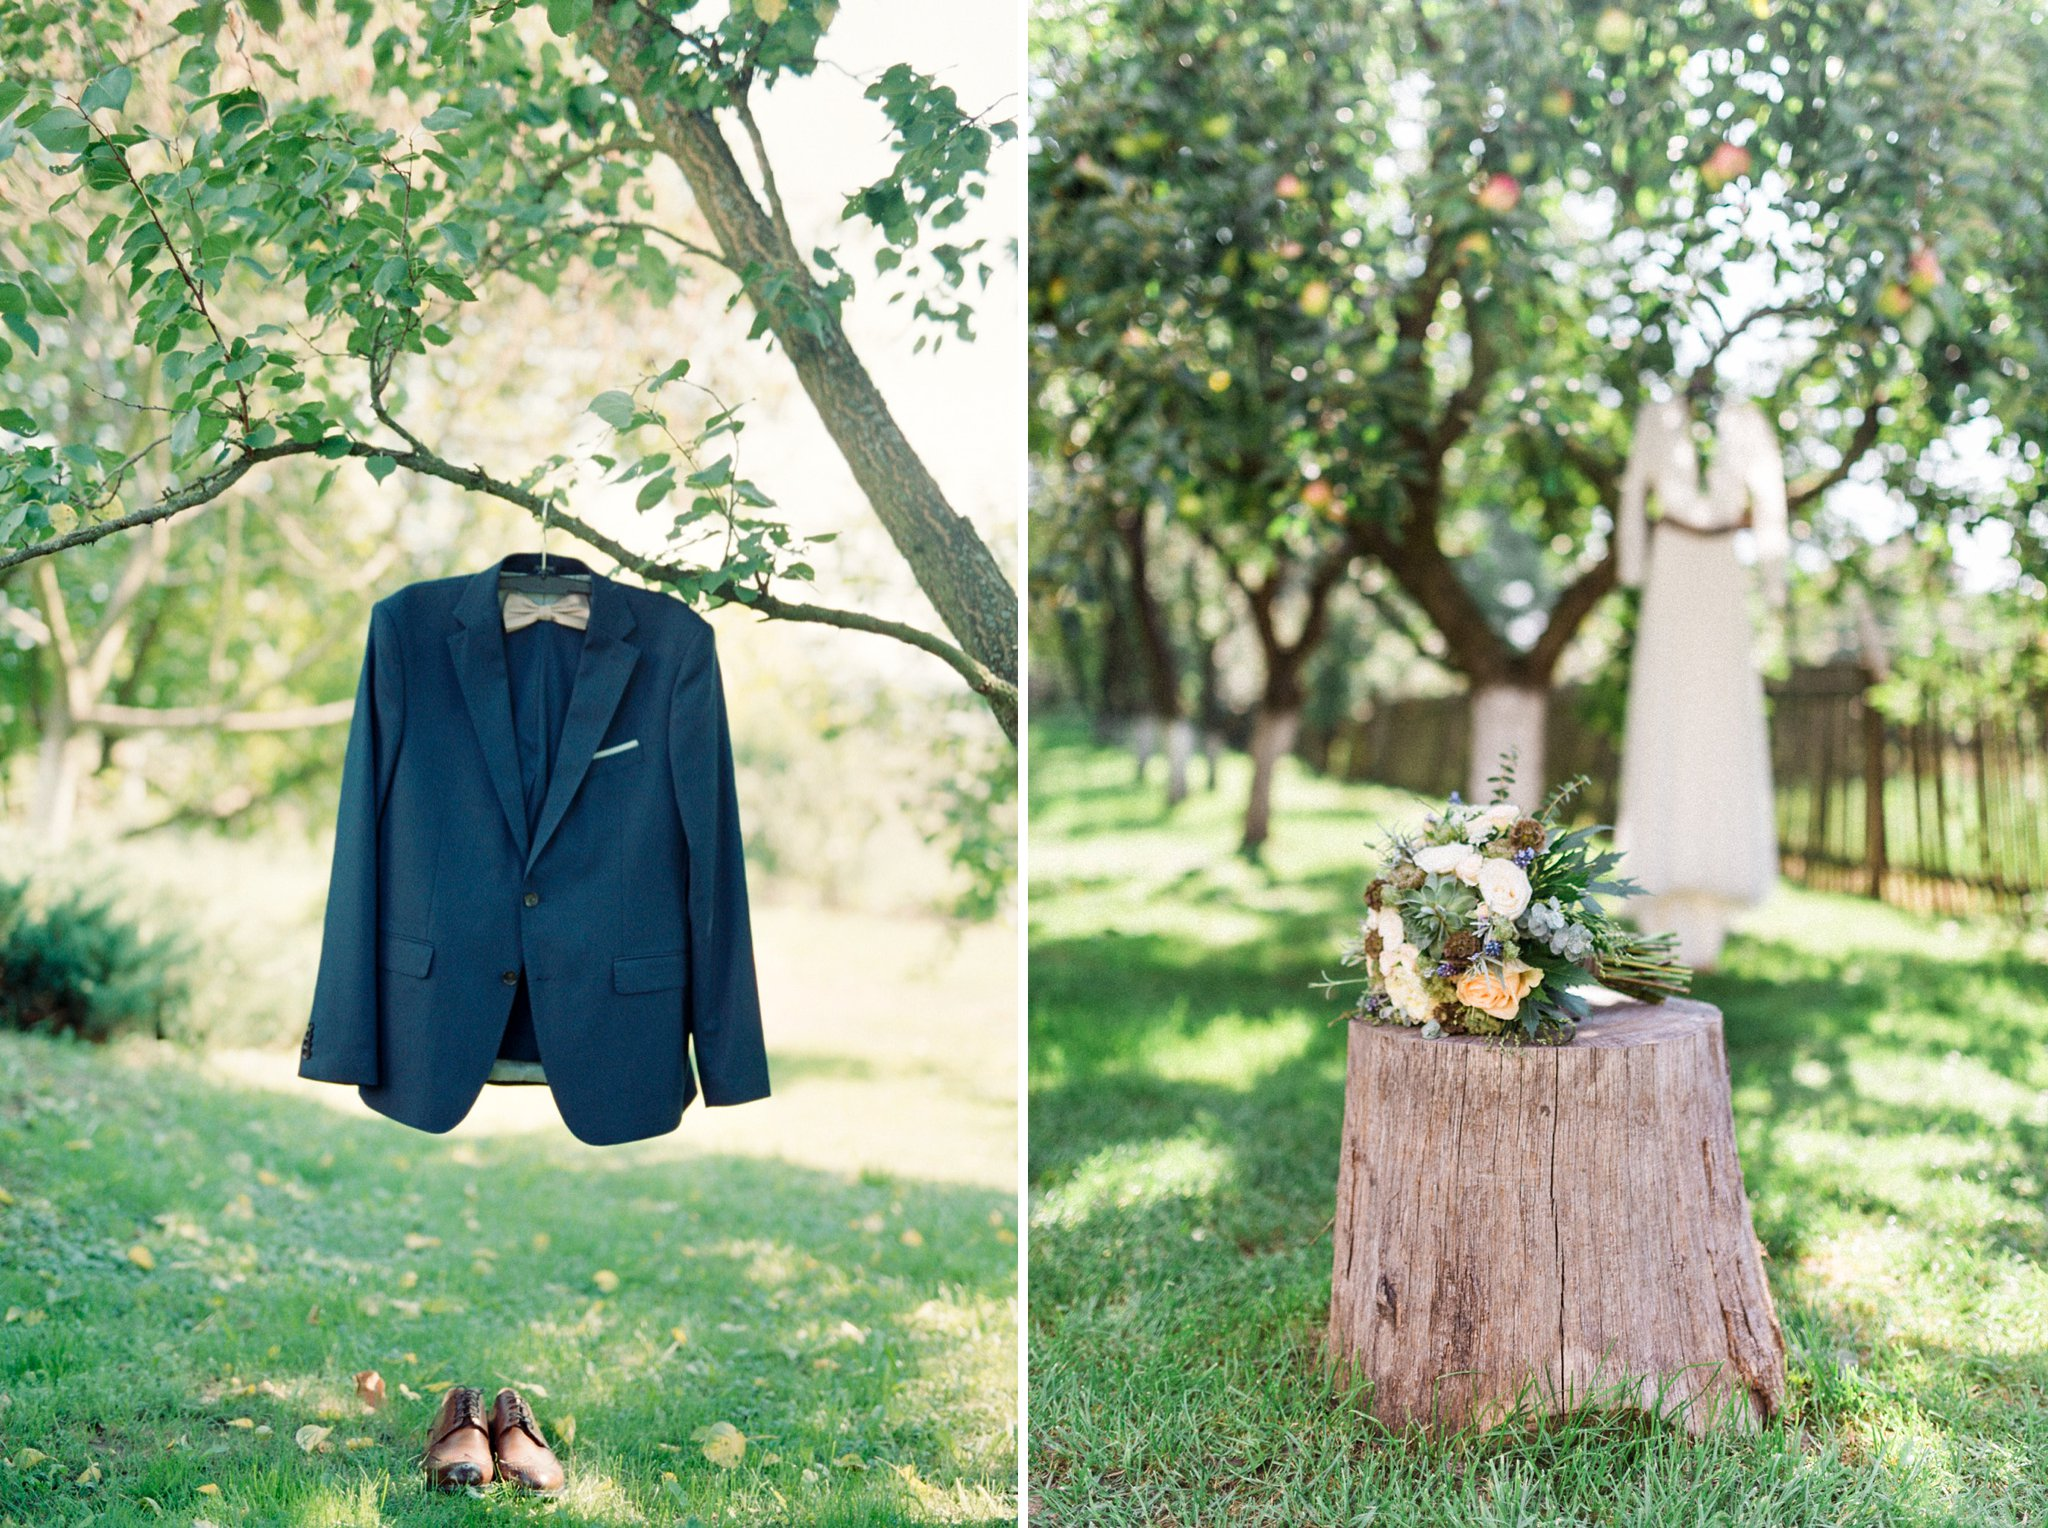 03-wedding-wear-natural-wedding-outside-apple-orchard